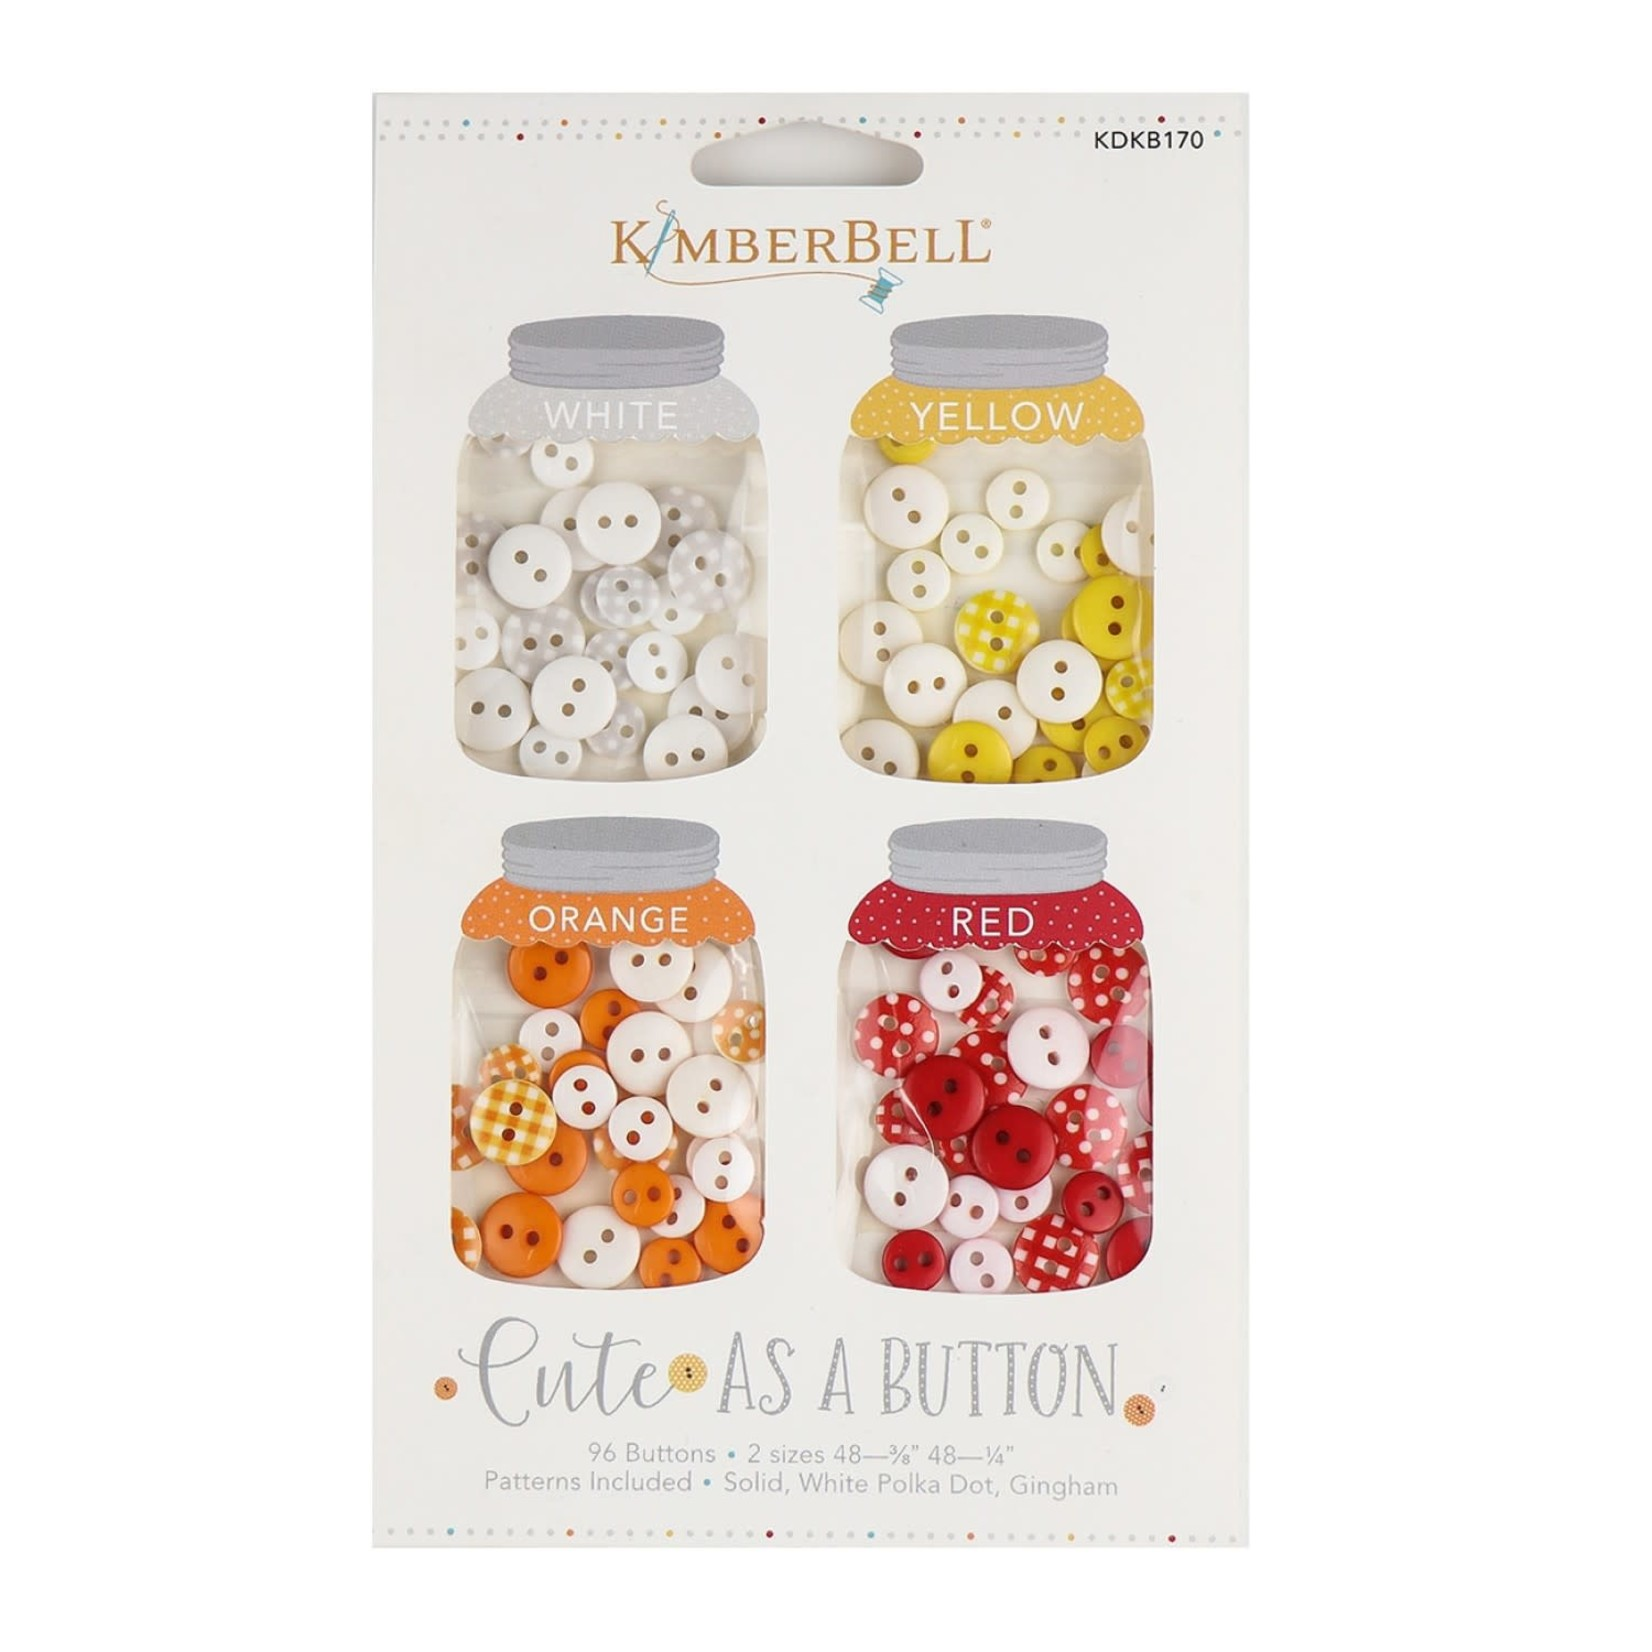 Kimberbell Designs Cute As A Button - White, Yellow, Orange, Red